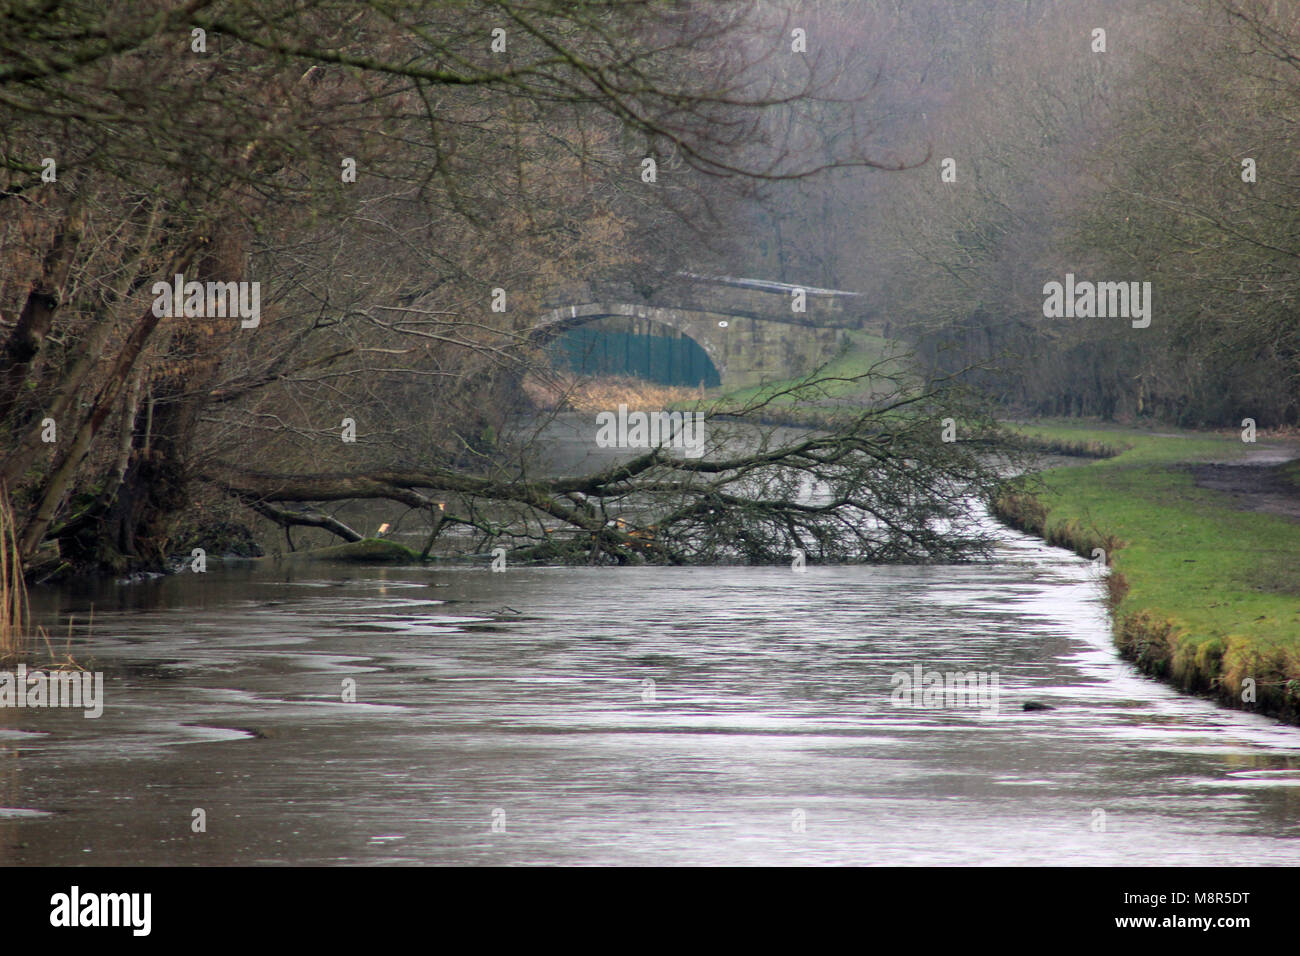 A fallen tree lies across the icy waters of the Leeds and Liverpool canal in the Douglas valley in West Lancashire - Stock Image